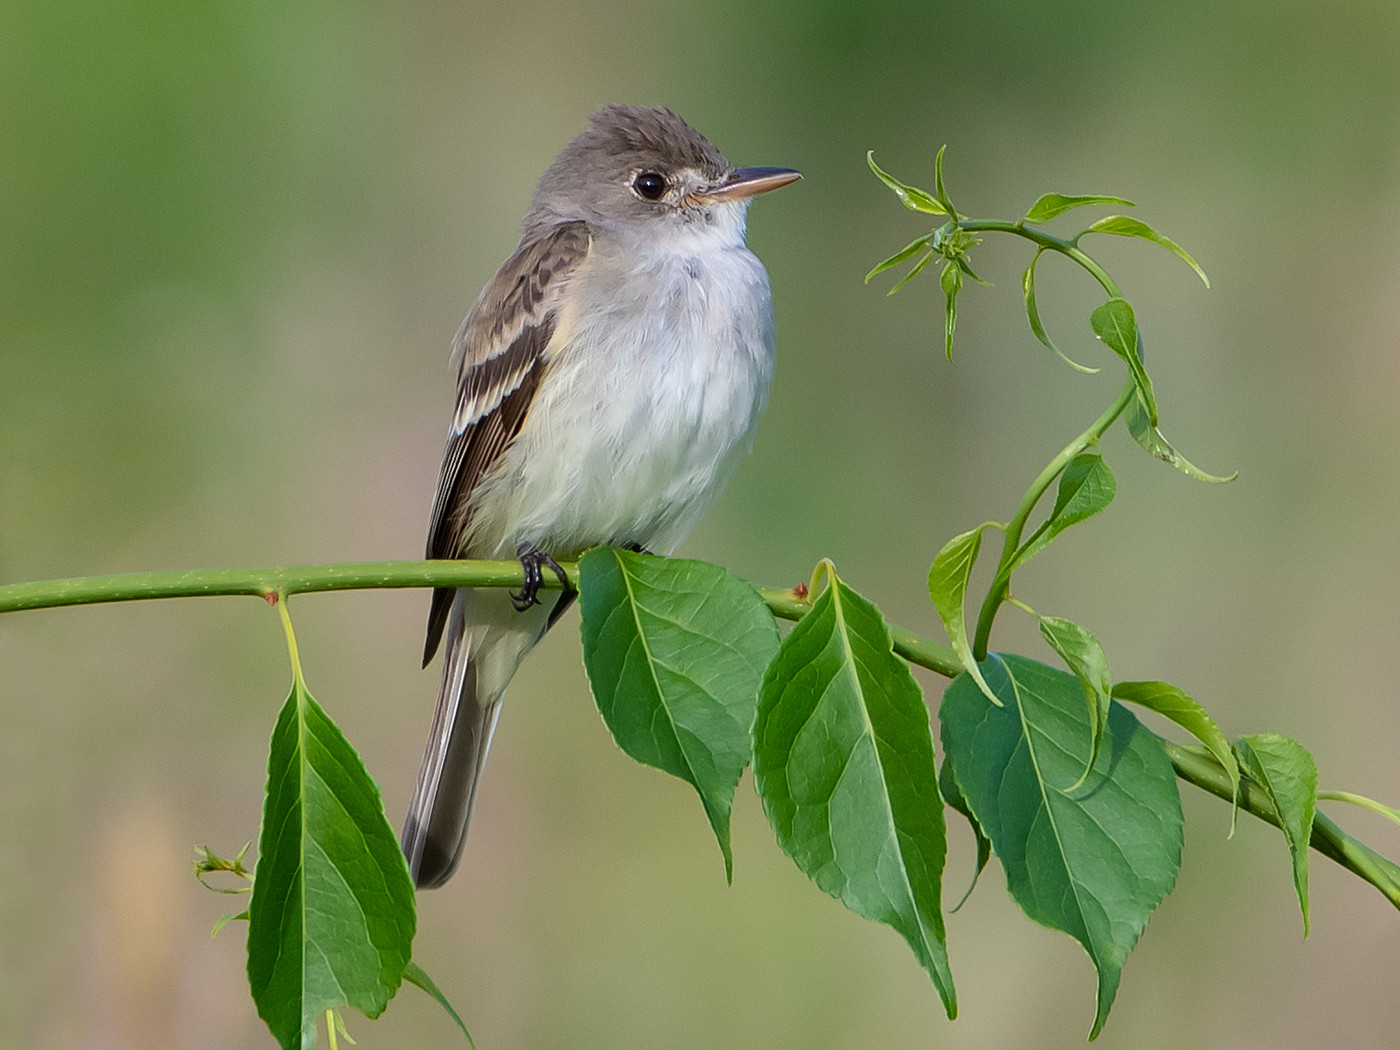 Willow Flycatcher_Second Place_Michael Krampitz